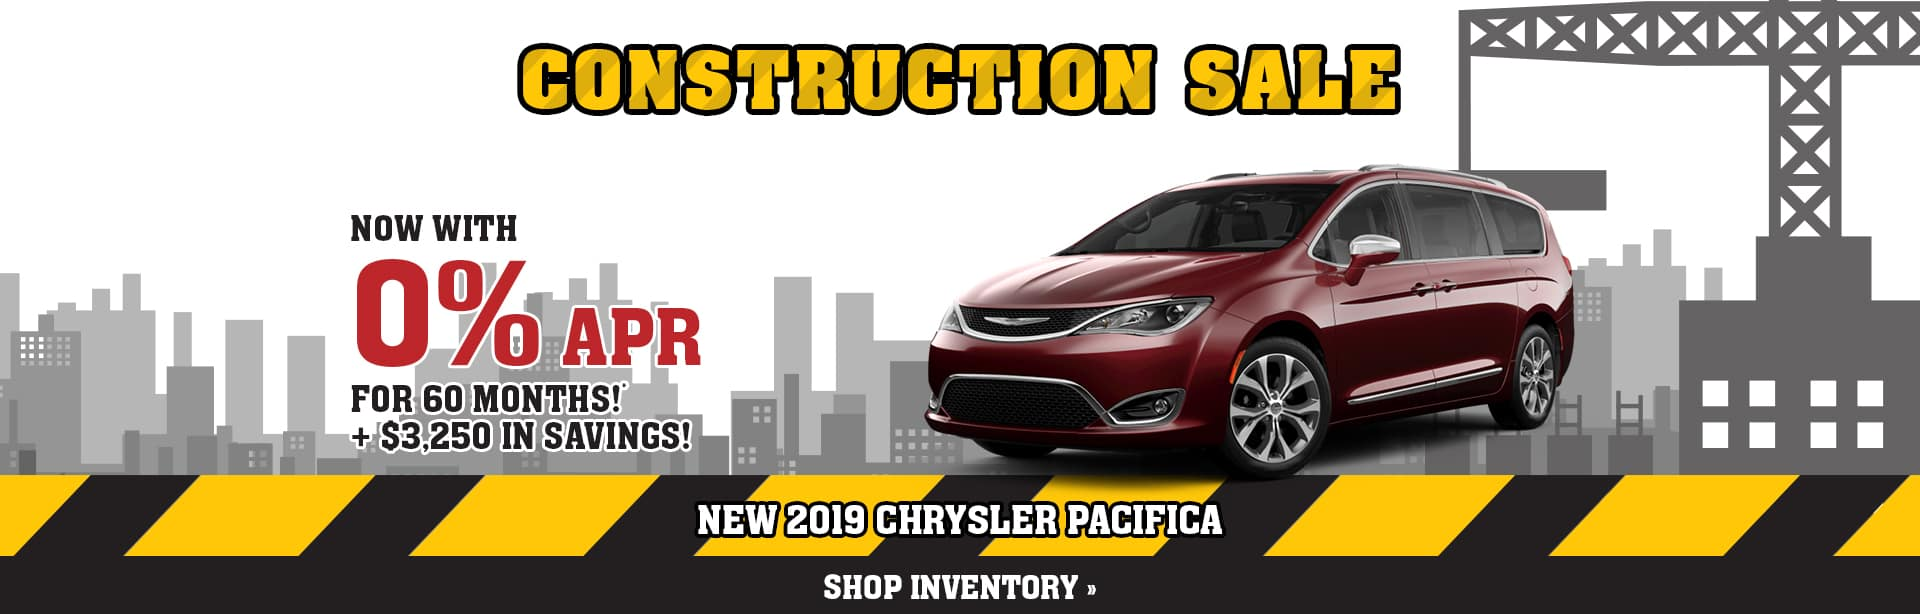 Special Rebate and Finance offer on a Chrysler Pacifica near Clay City, Indiana